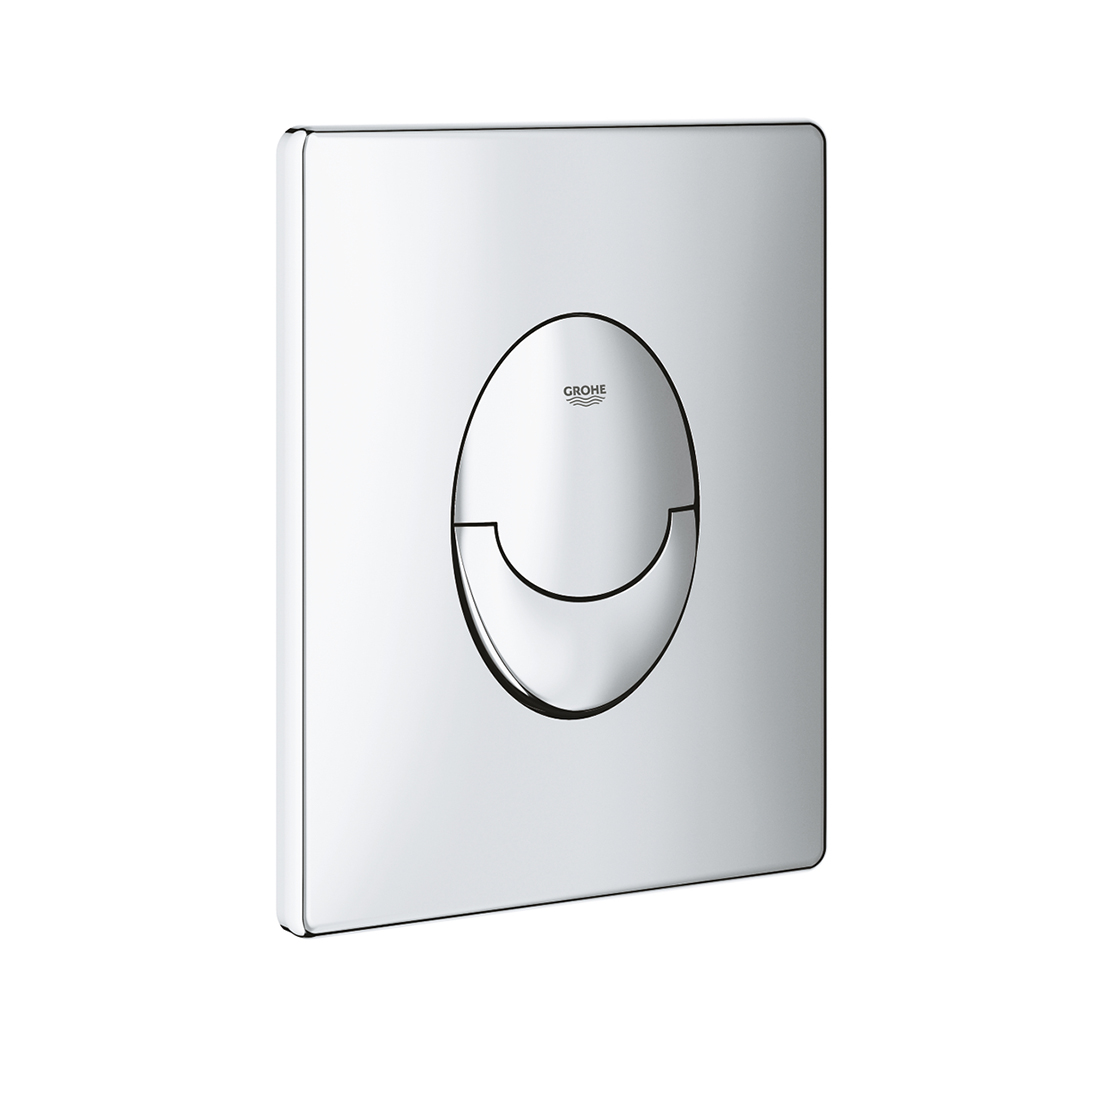 Grohe 38505000 Skate Air Wall Plate